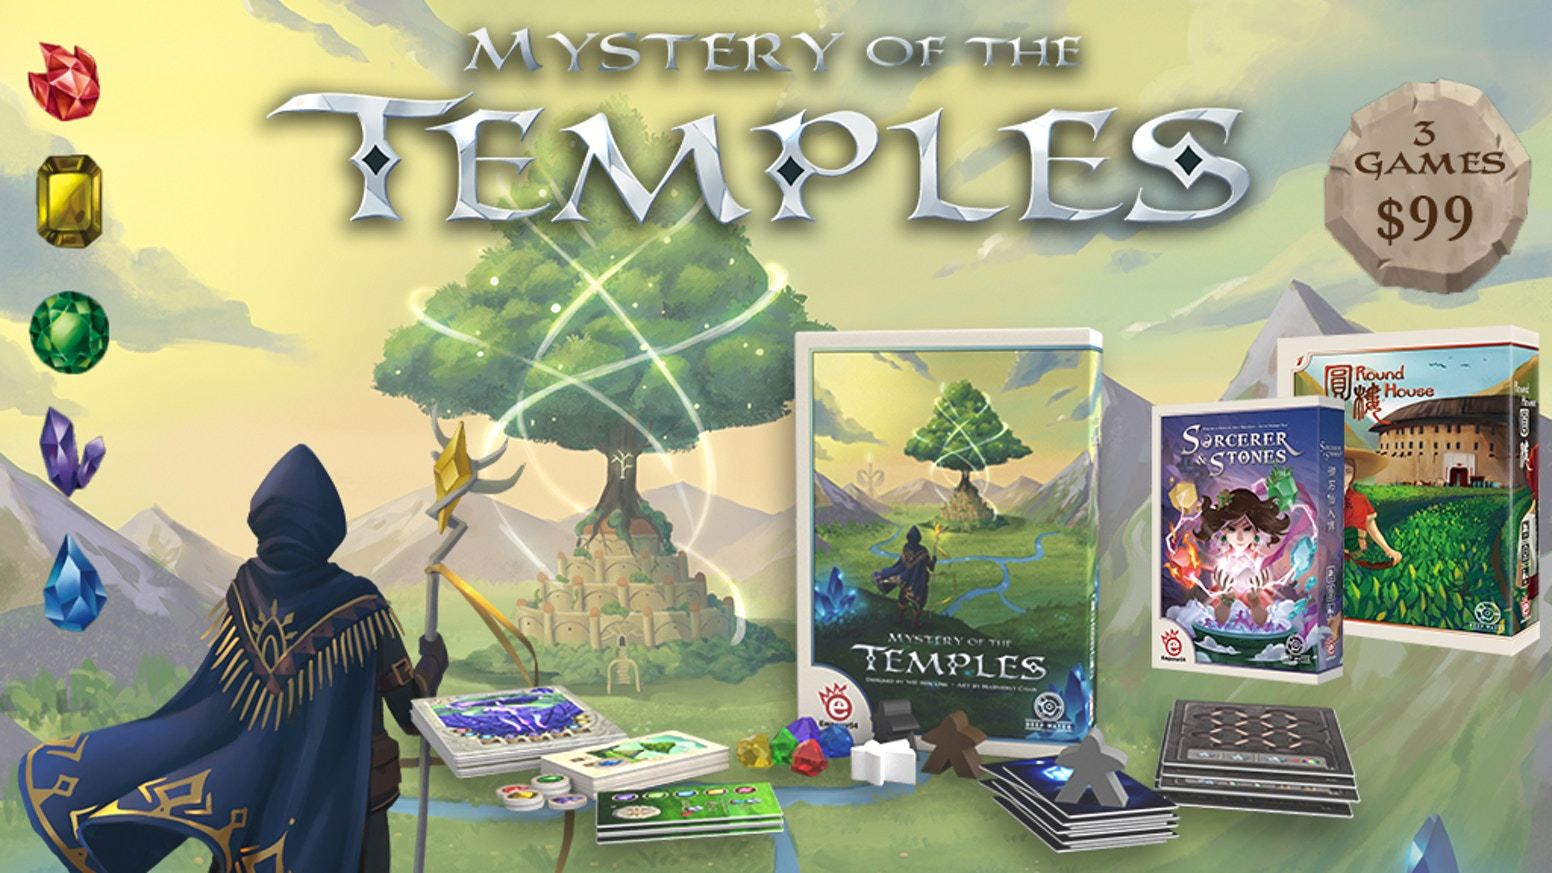 Mysterious temples call to you, brave adventurer. Can you break the dark curses and unlock the power of hidden runes and rise to glory?